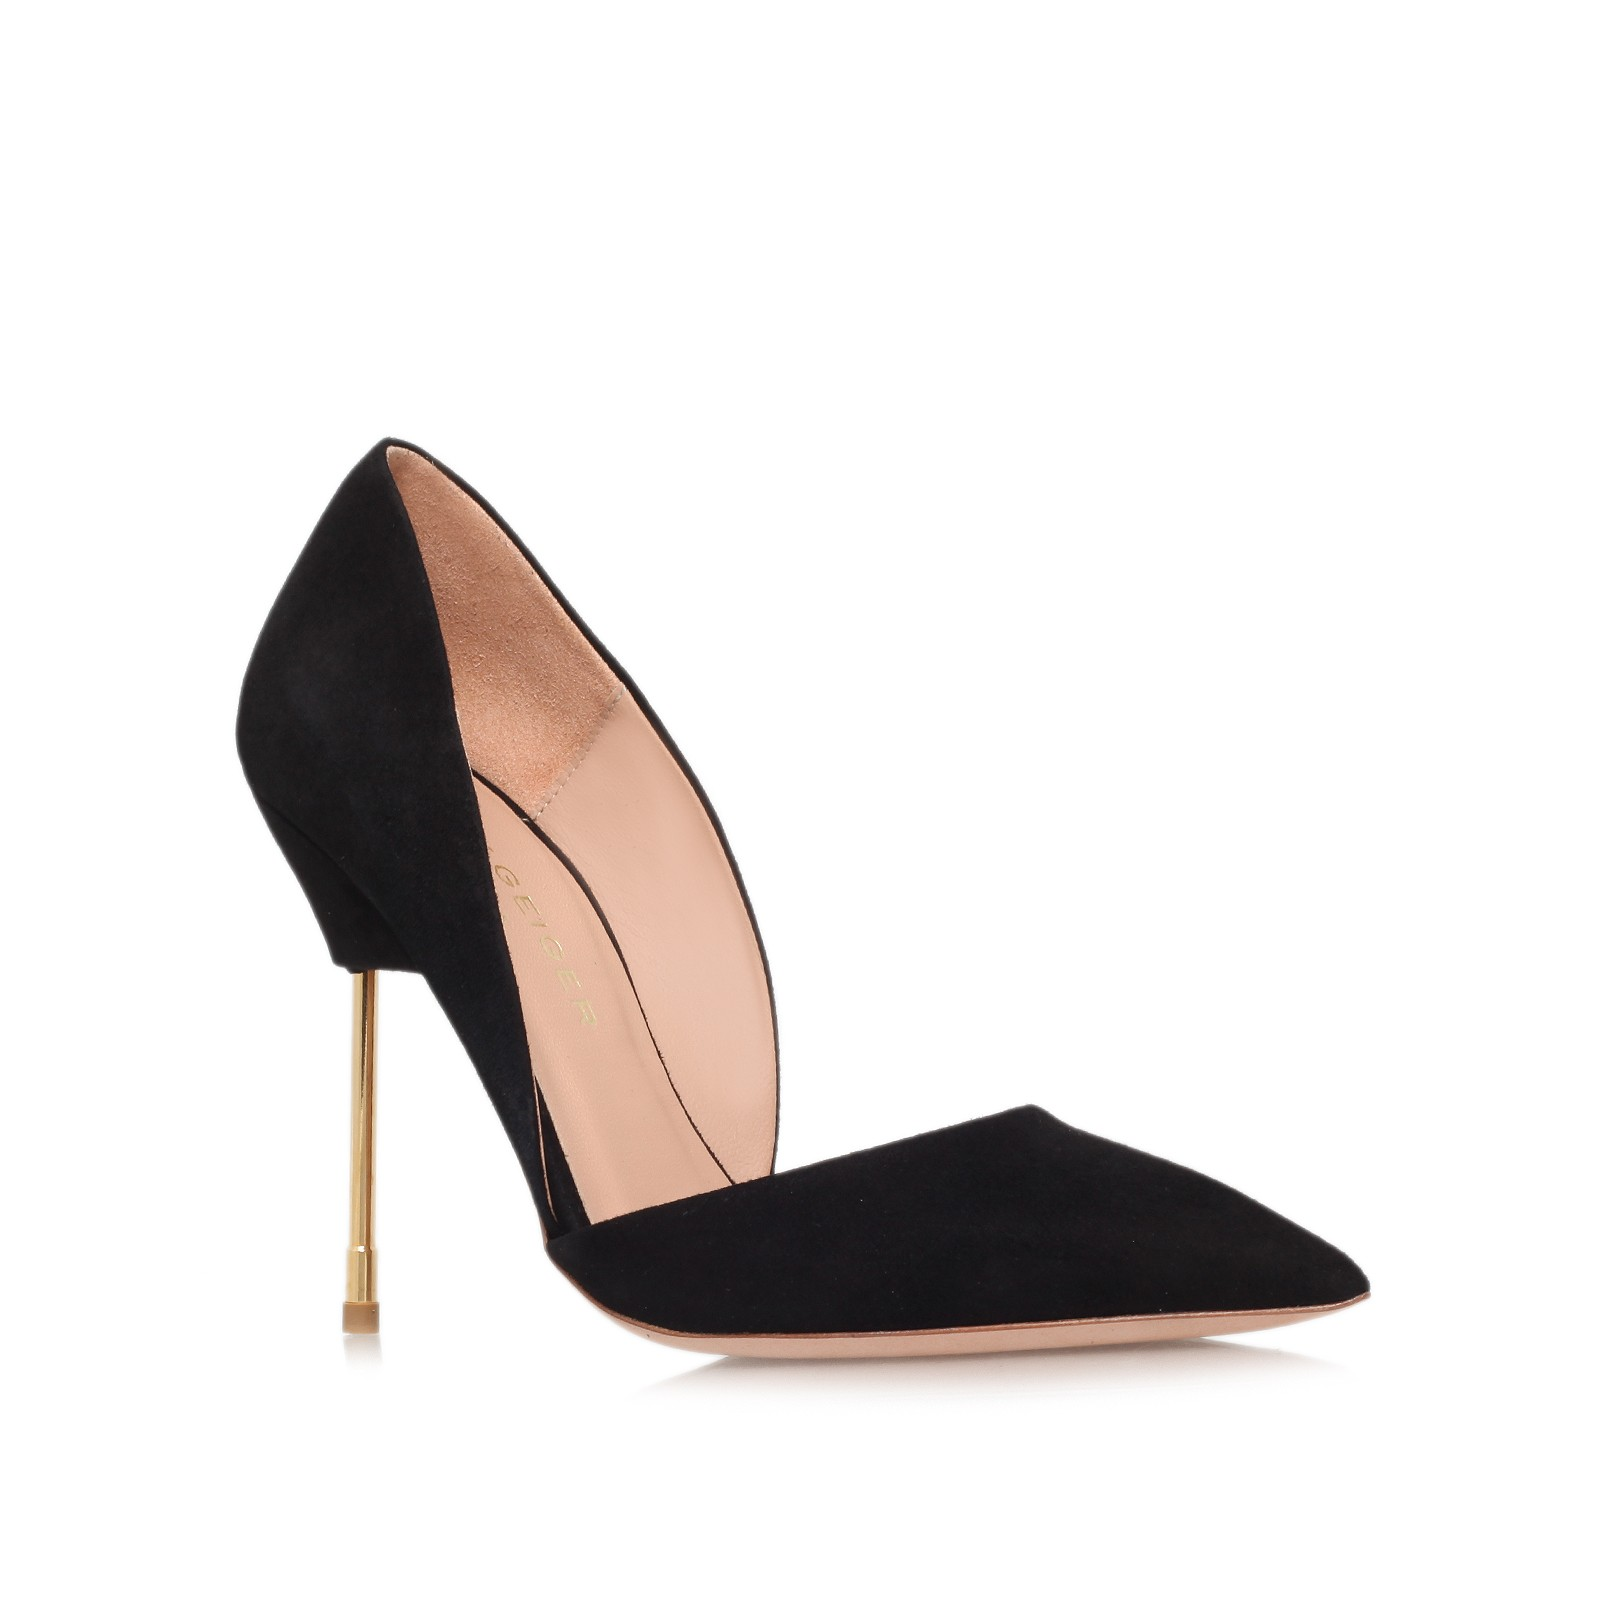 best selection of big clearance sale hot-selling authentic BOND Black High Heel Court Shoes by Kurt Geiger London | Kurt Geiger